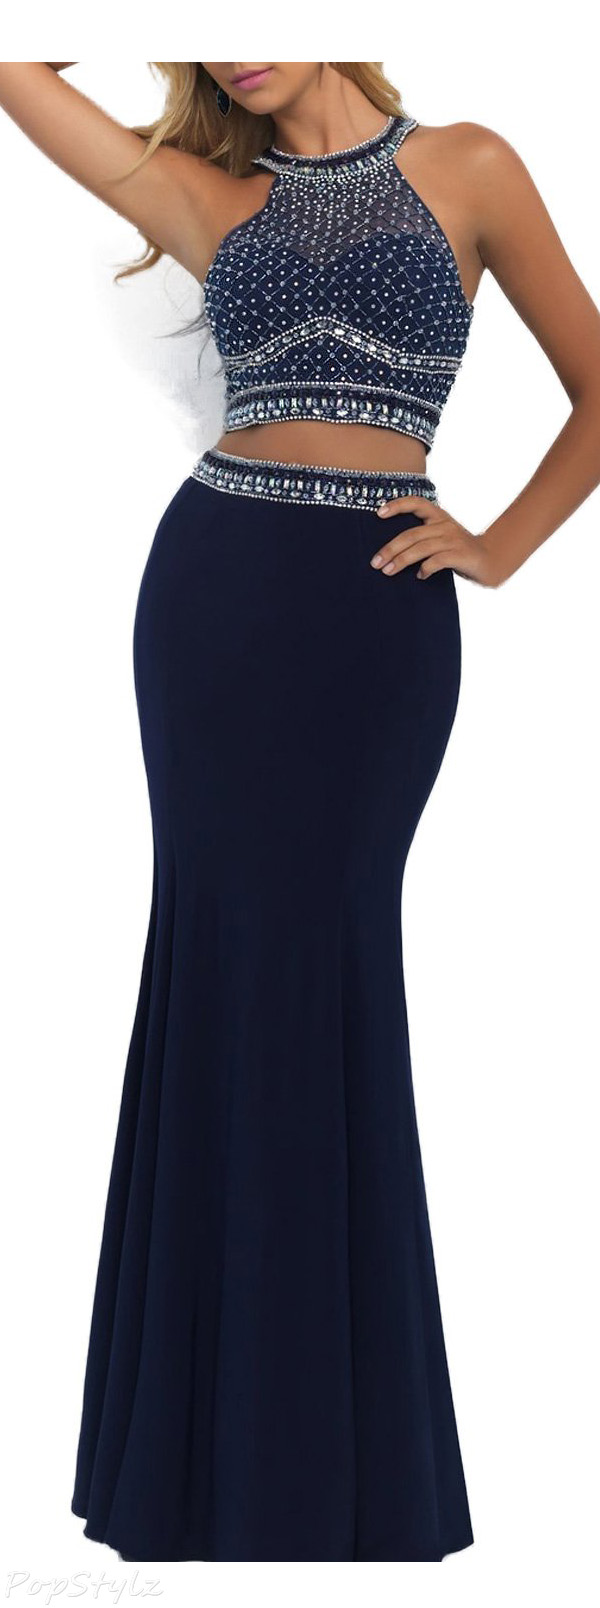 SeasonMall Two-Piece Mermaid Long Formal Dress